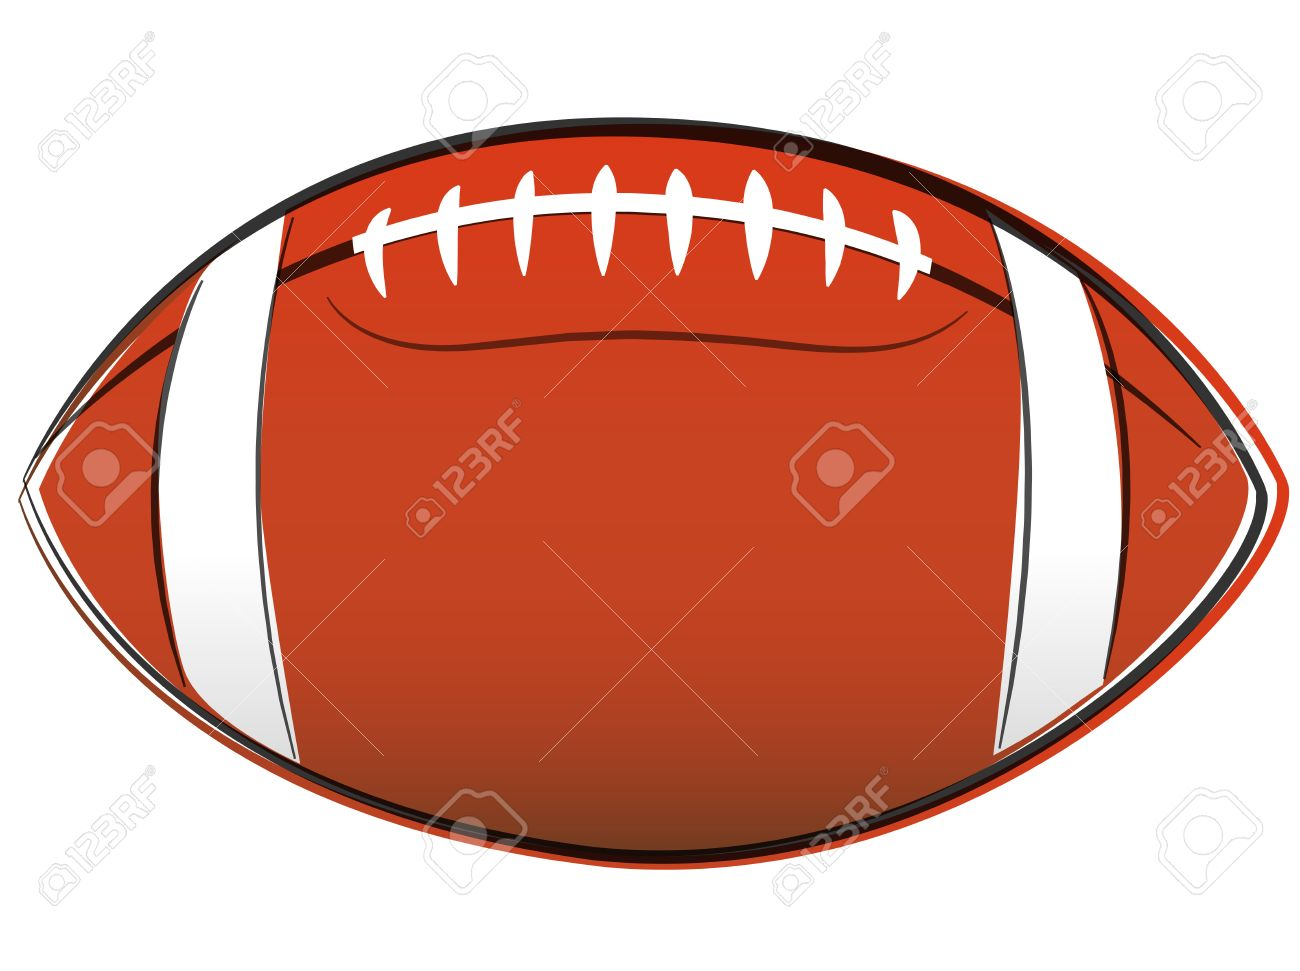 1300x971 Illustration Of American Football Ball Drawing On White Background